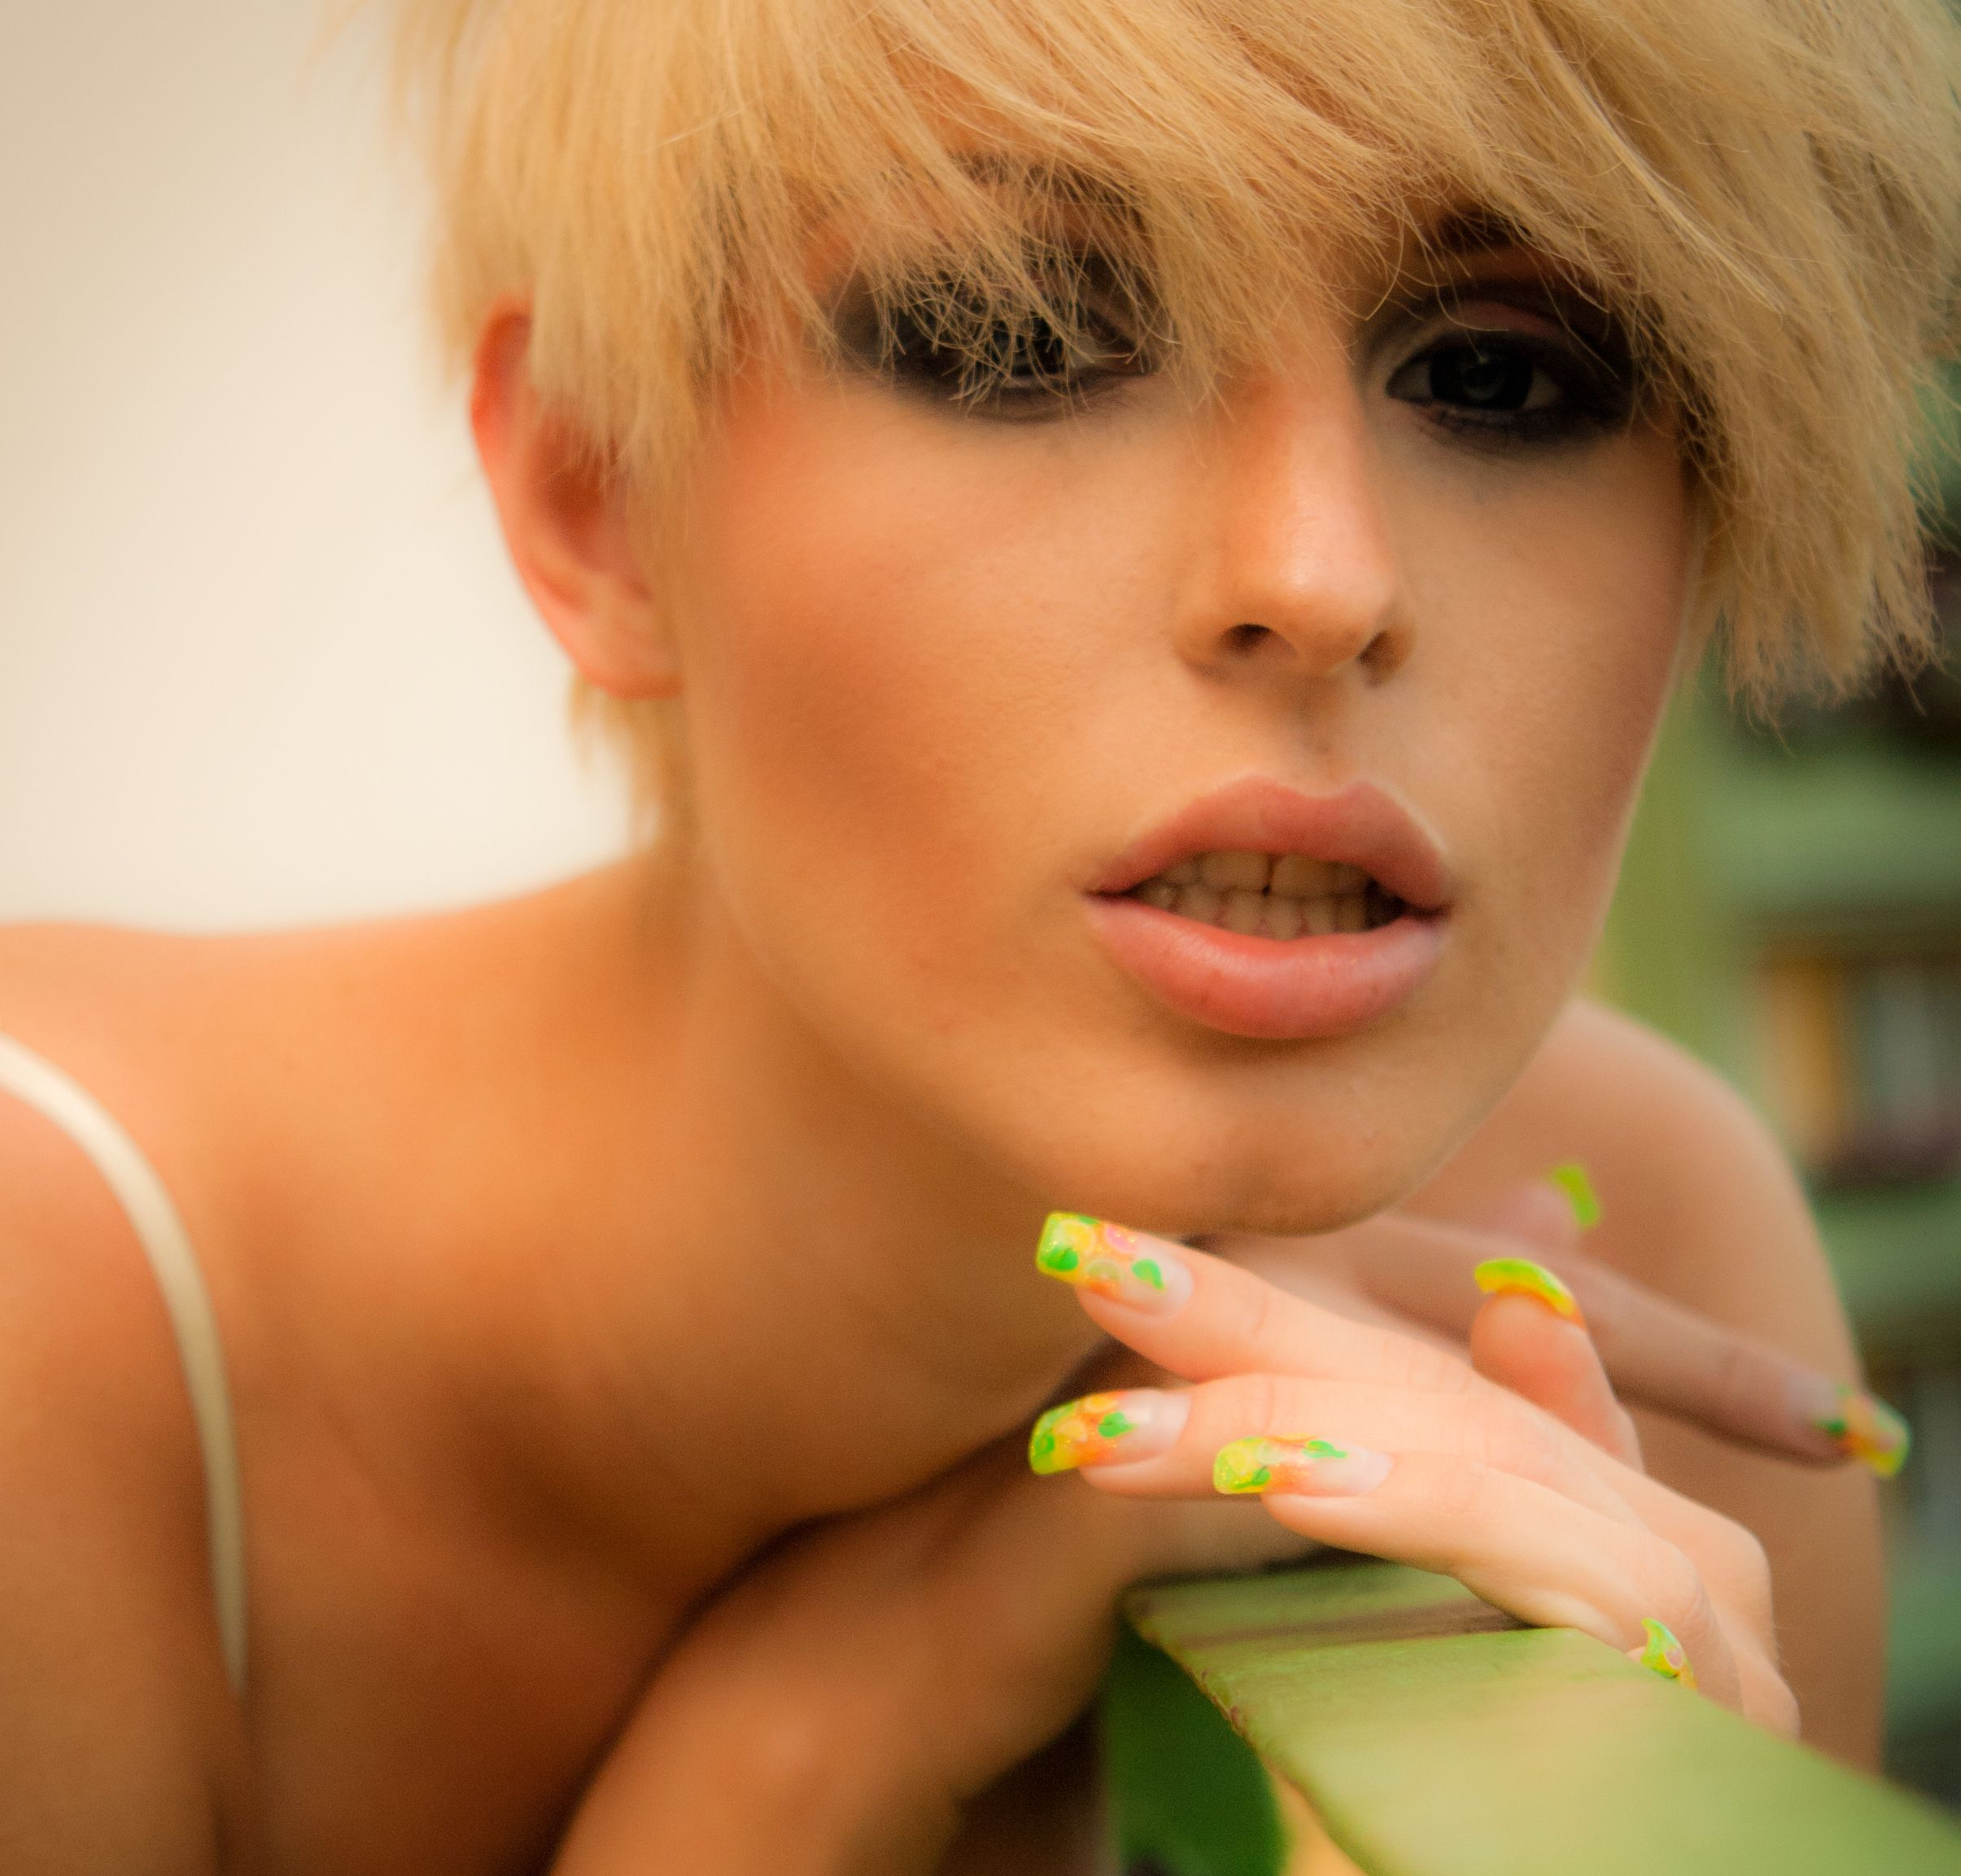 Model photography that includes custom portfolios is one of the services we are proud to offer at Intrepid Photography.